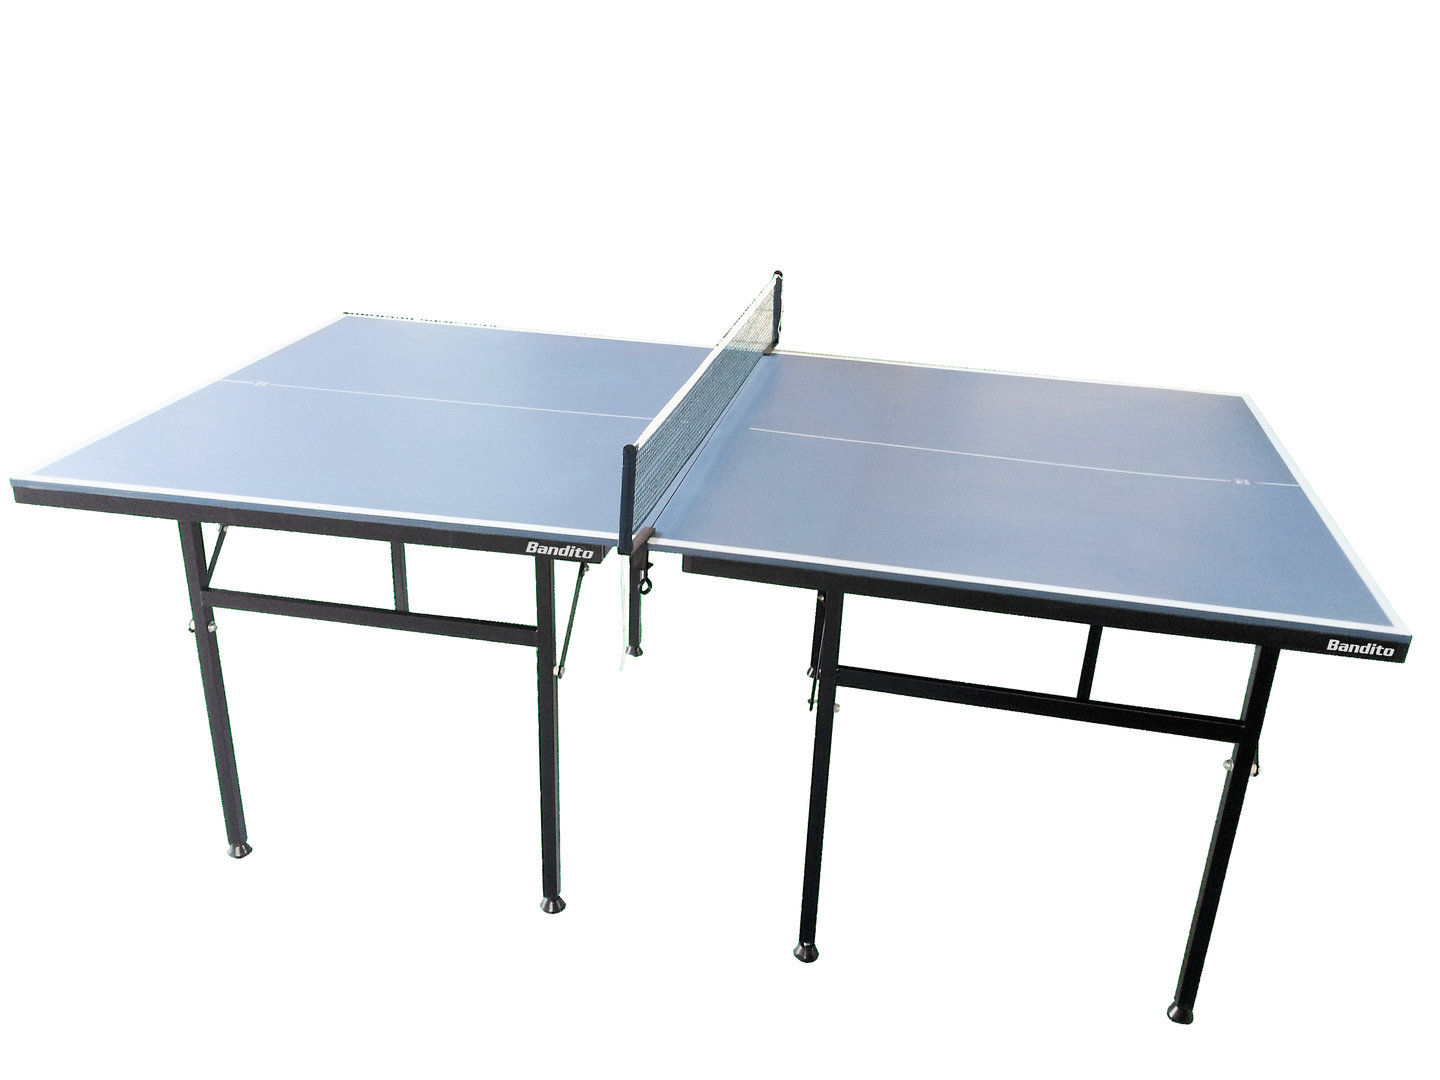 - Bandito Ping-Pong Table Junior Fun Online - Kickerkult Onlineshop